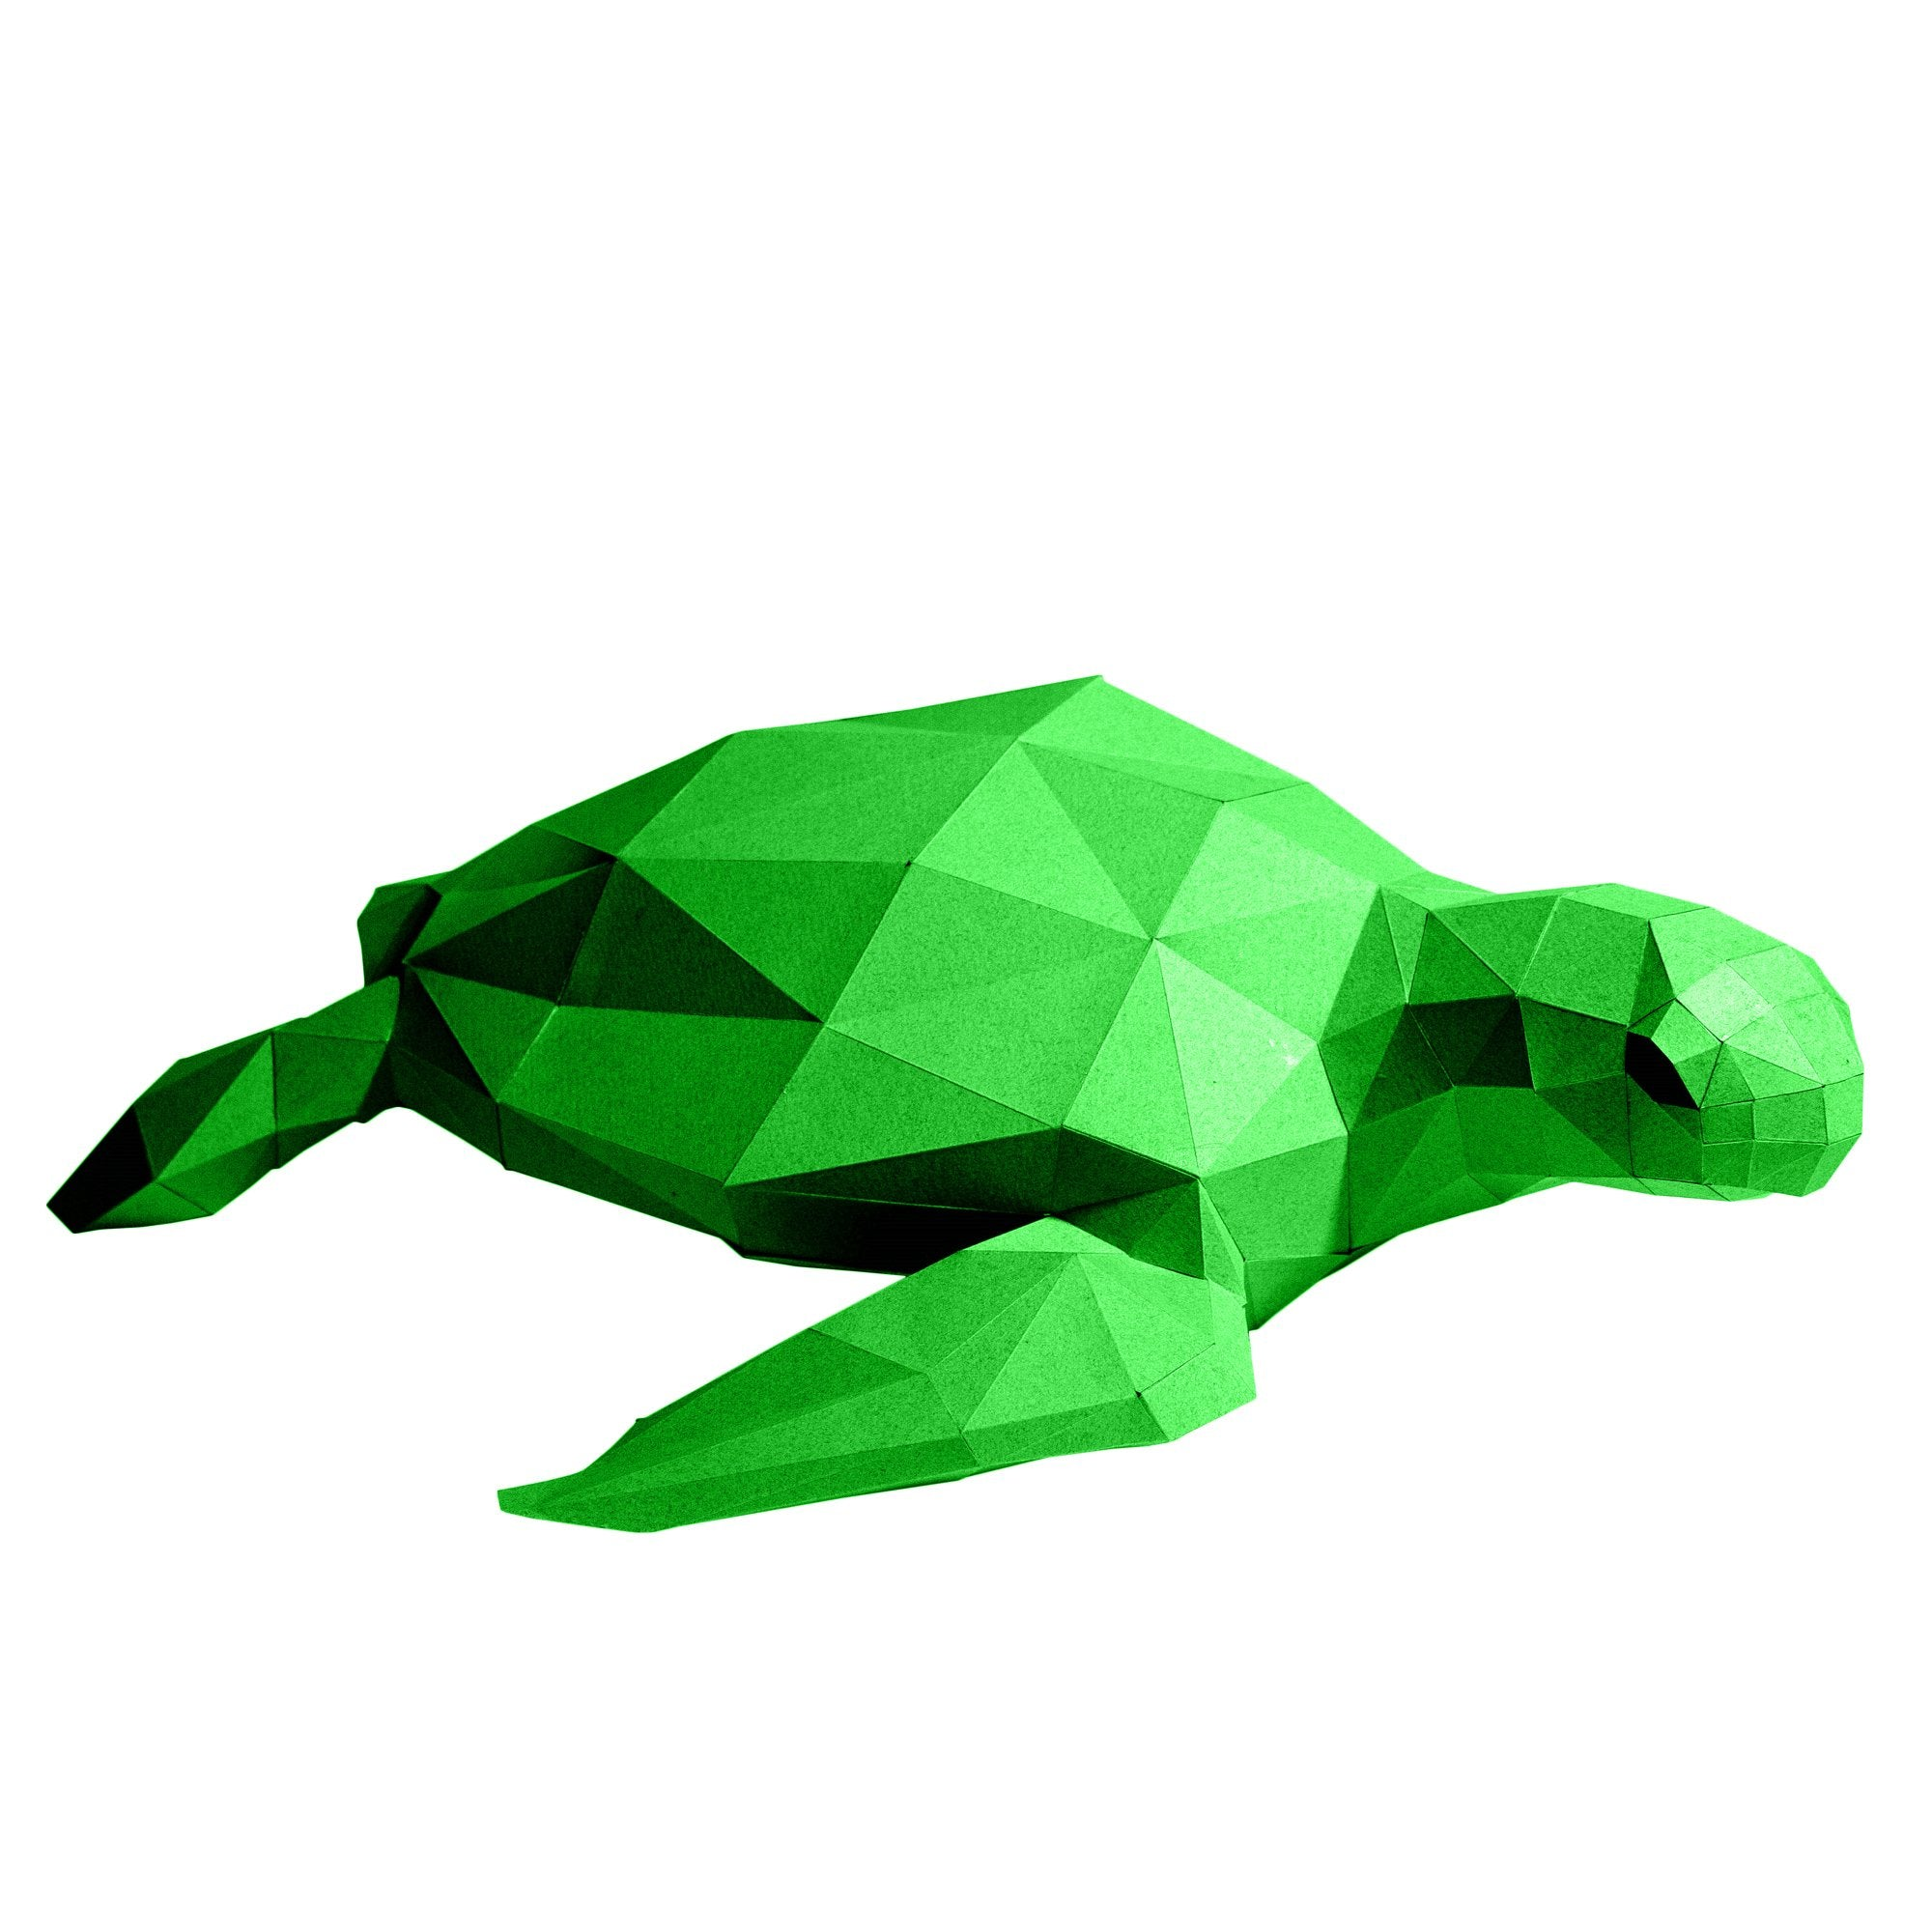 PAPERCRAFT WORLD Sea Turtle 3D Papercraft Model in Green